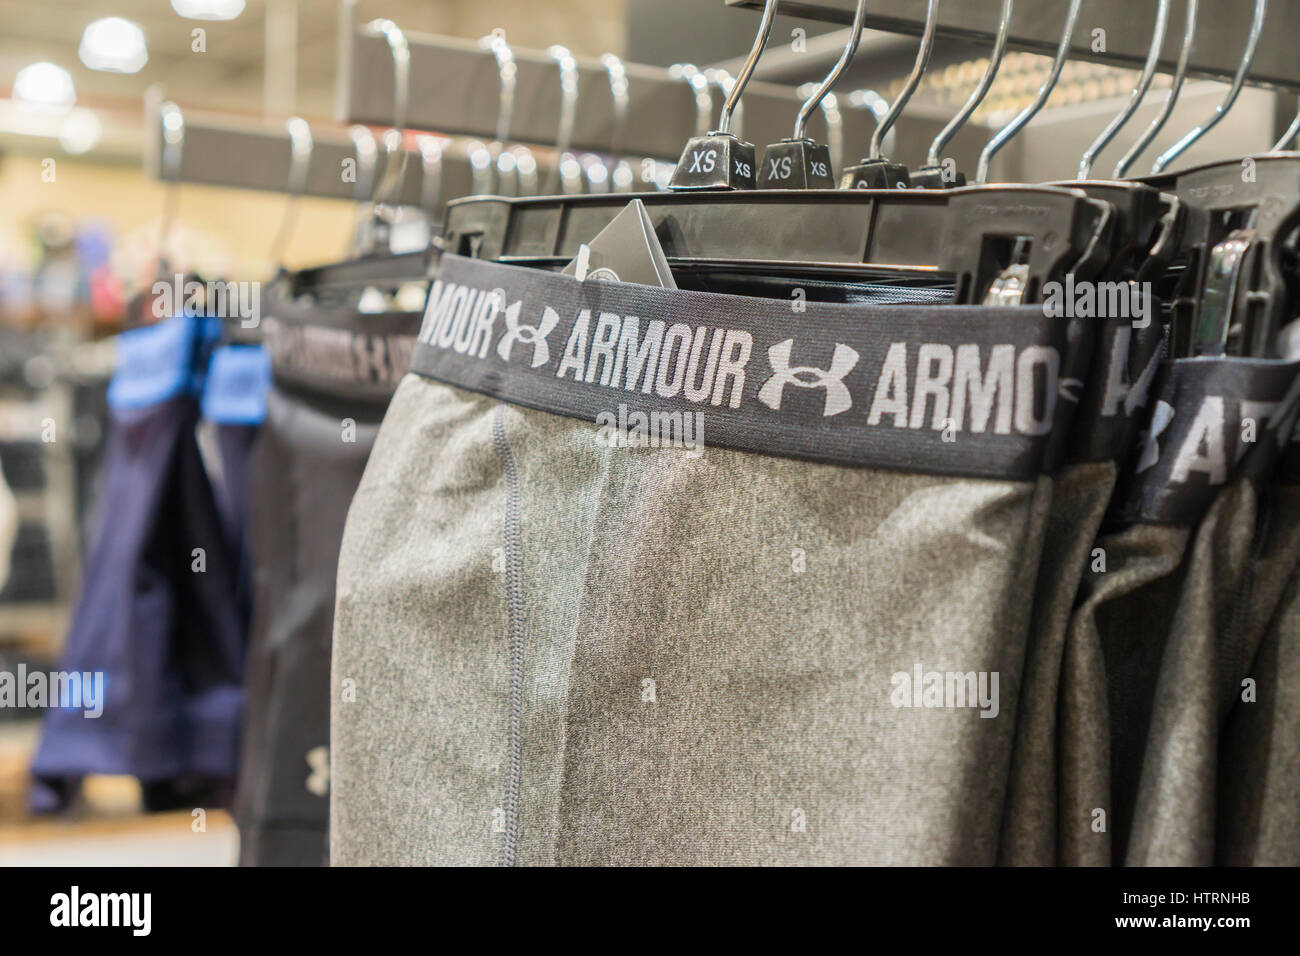 Privación Patria limpiar  Under Armour brand clothing in new Dick's Sporting Goods store in the Stock  Photo - Alamy